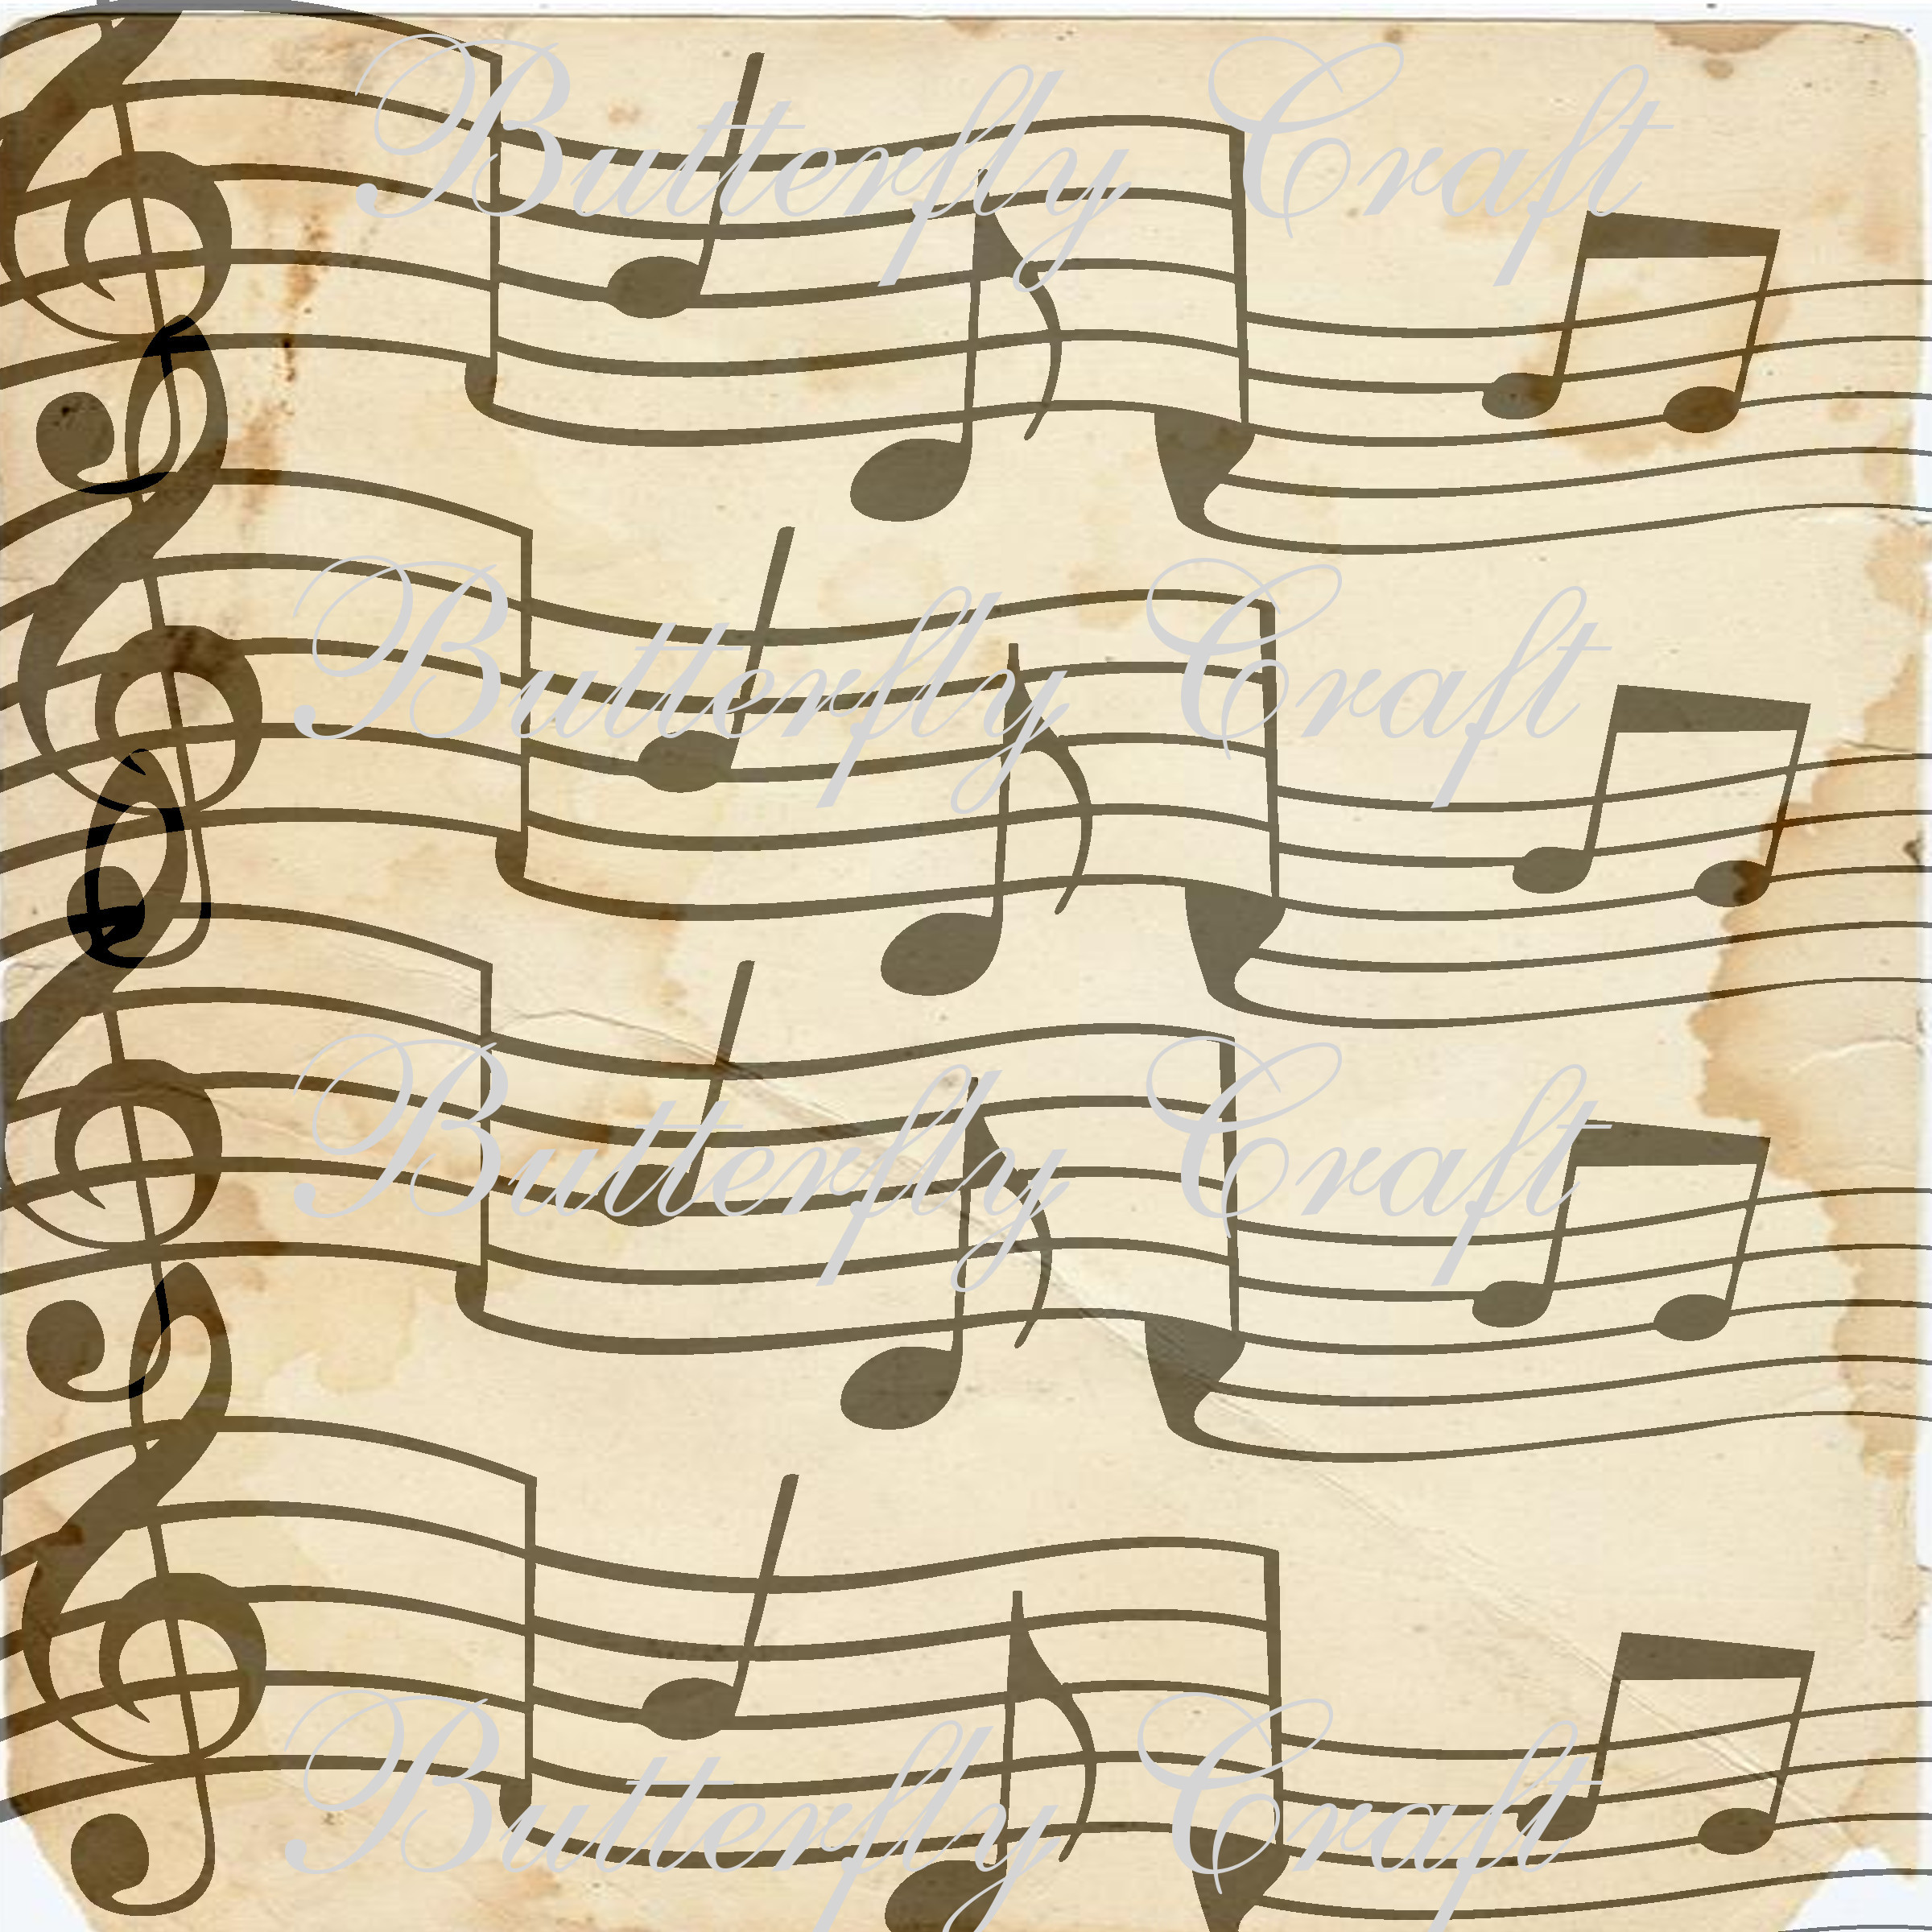 paper with music notes